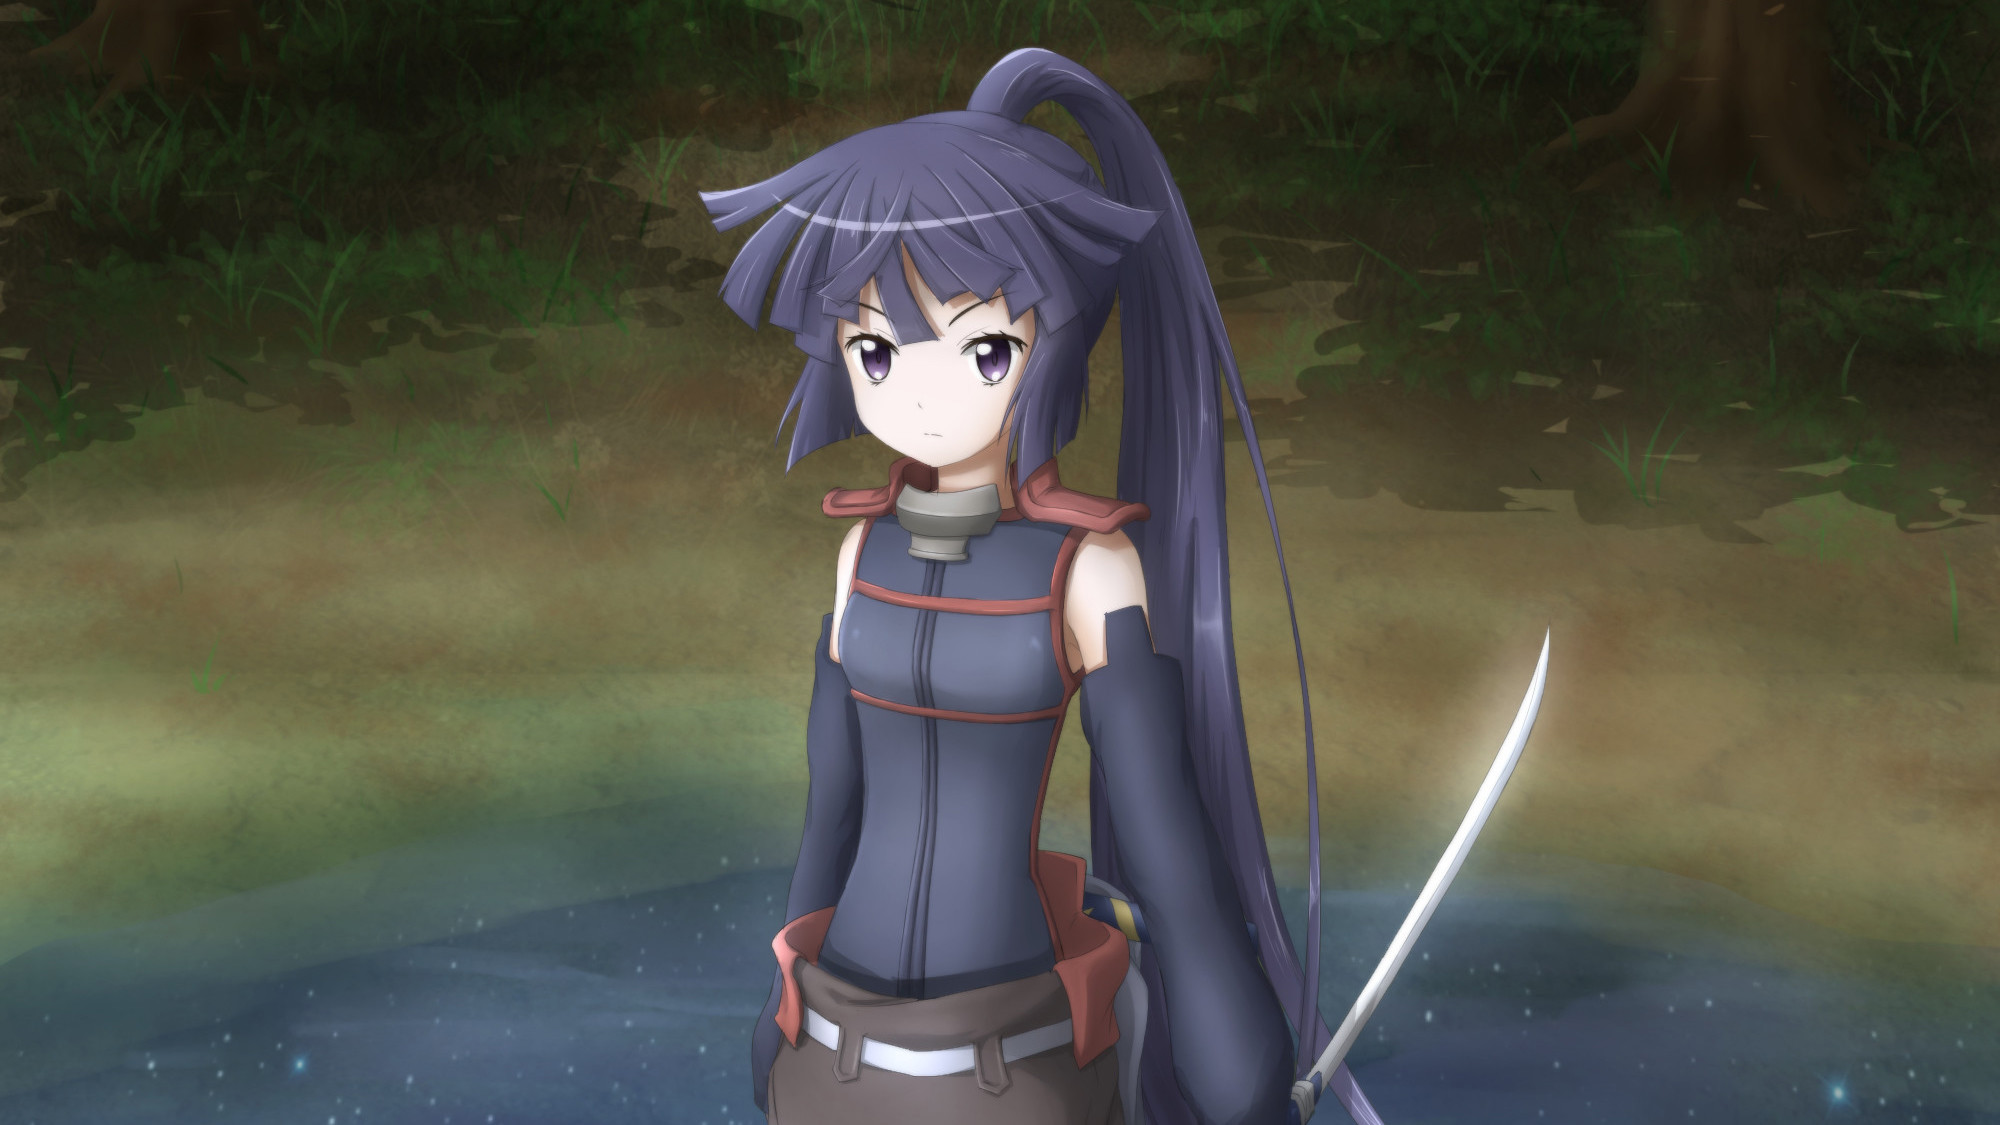 Akatsuki アカツ゠(Log Horizon) As (